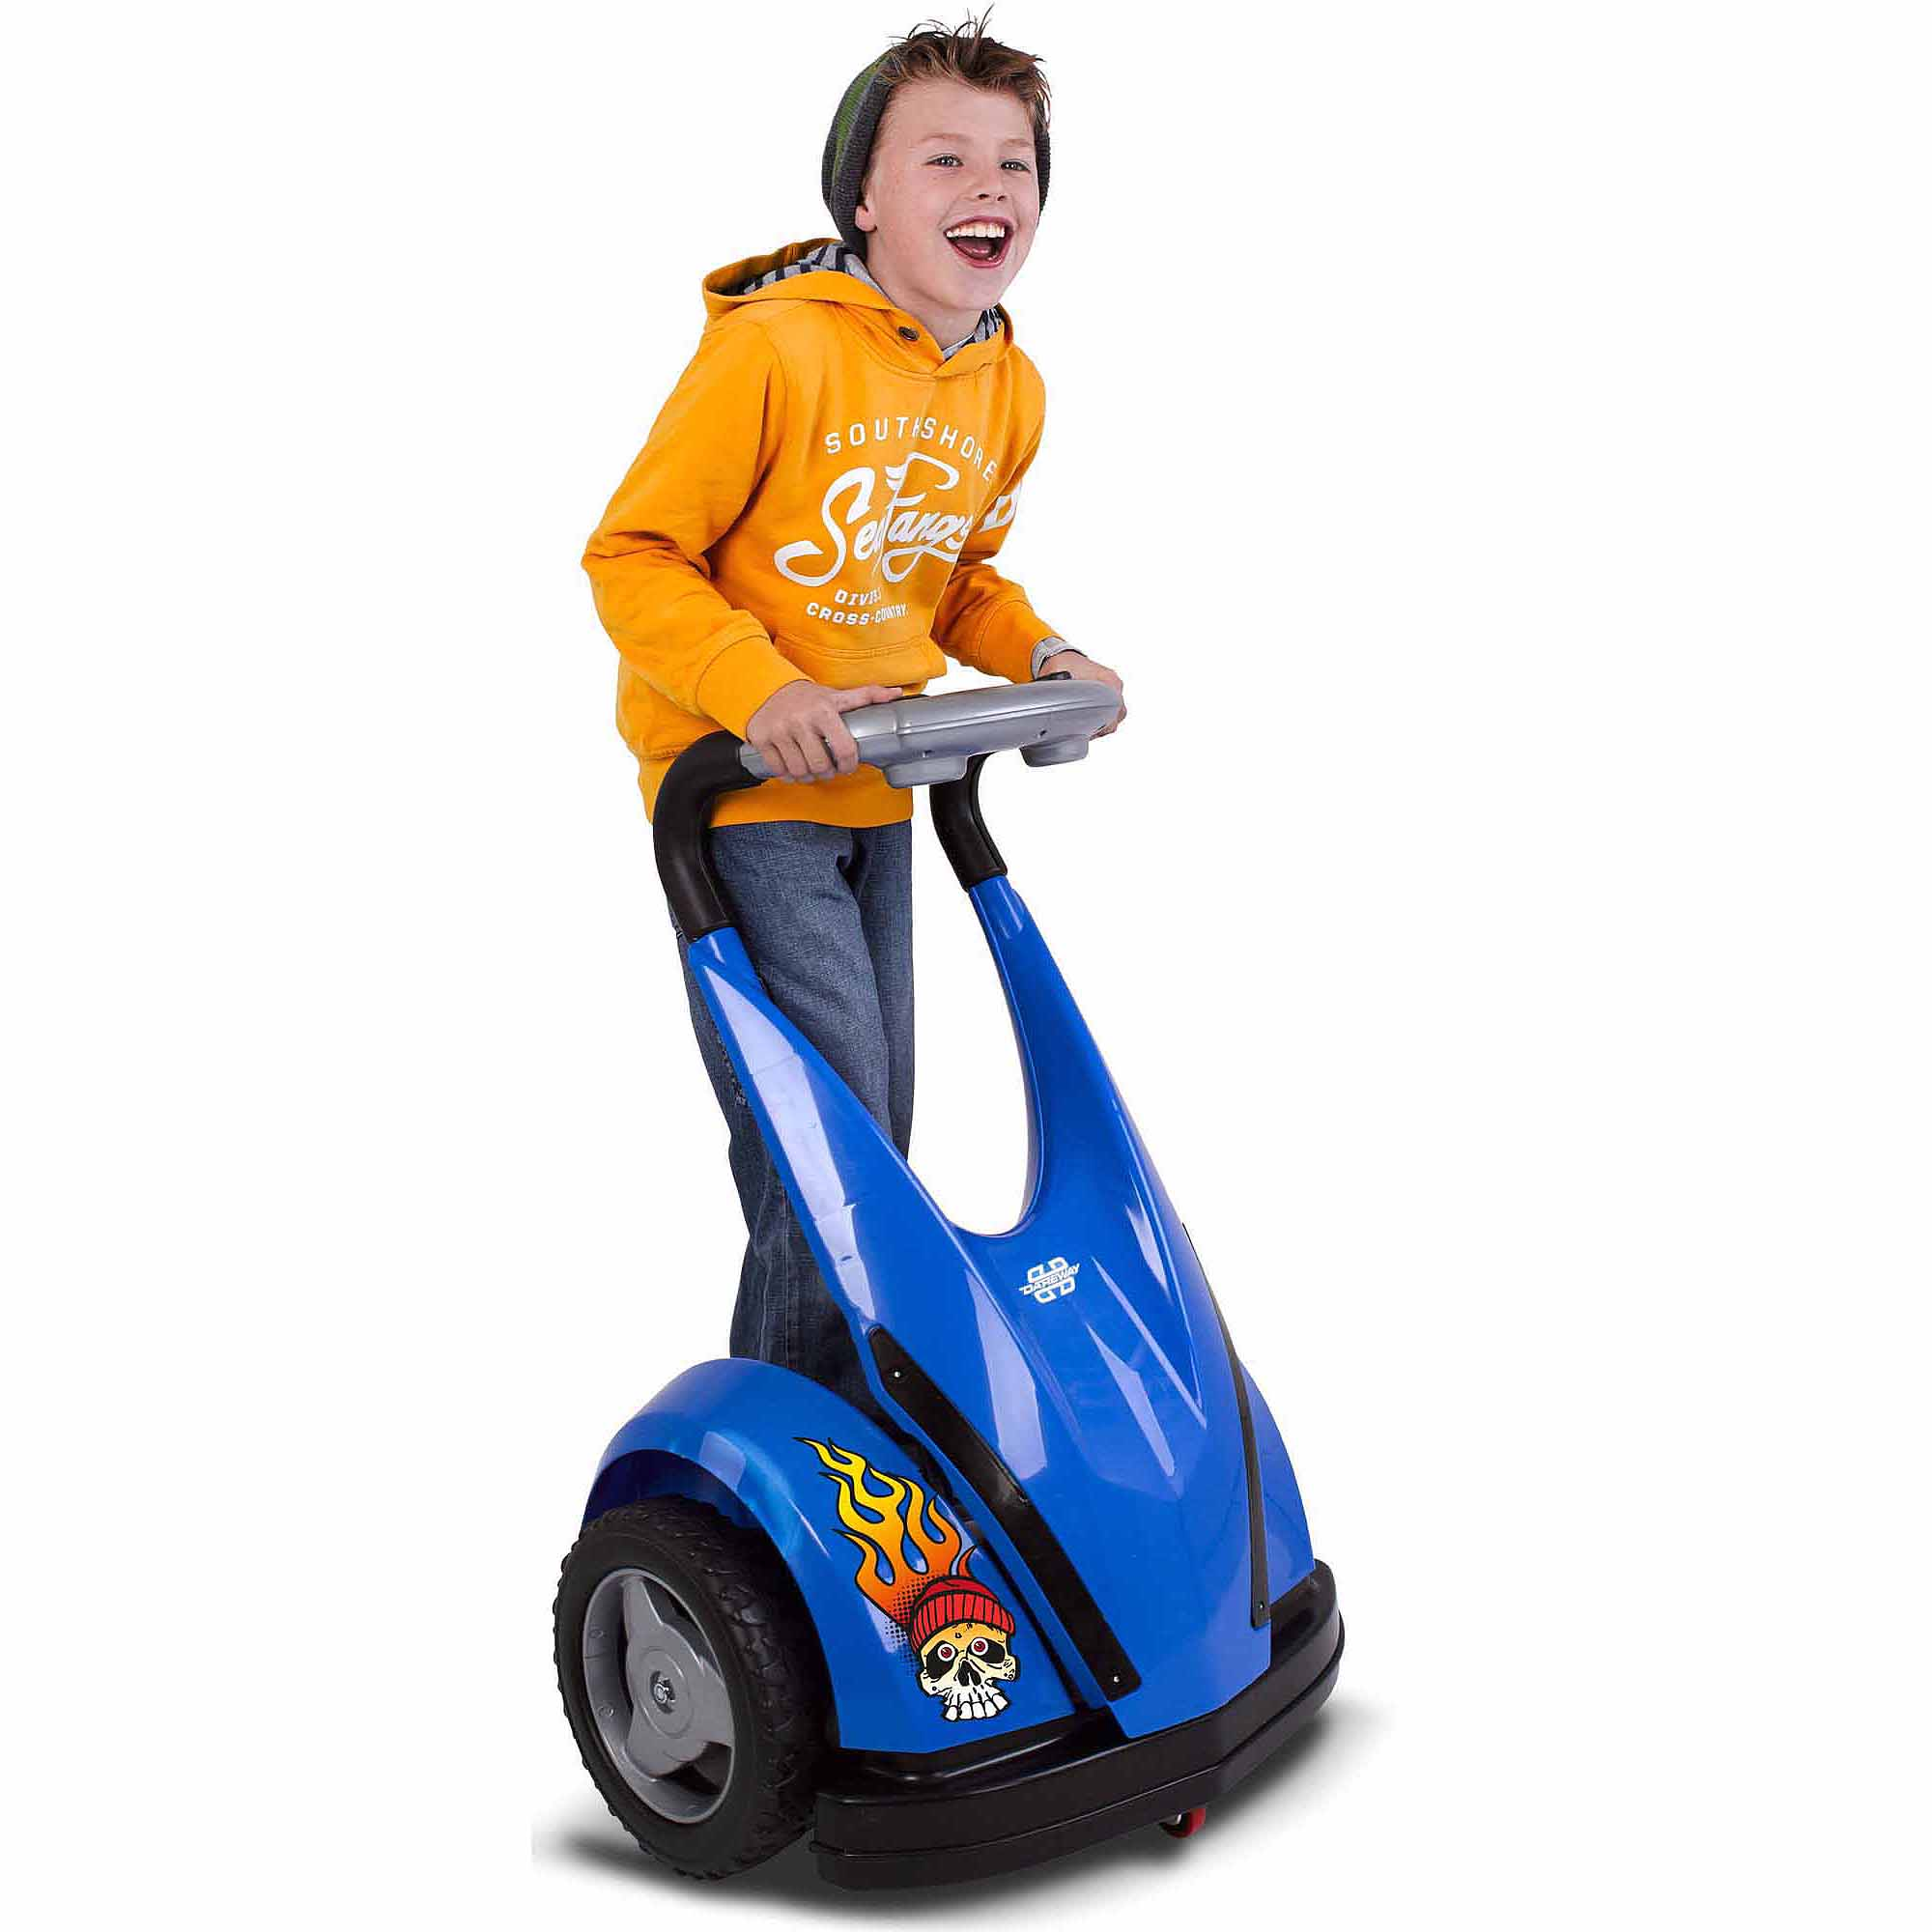 Dareway 12-Volt Battery-Powered Ride-On